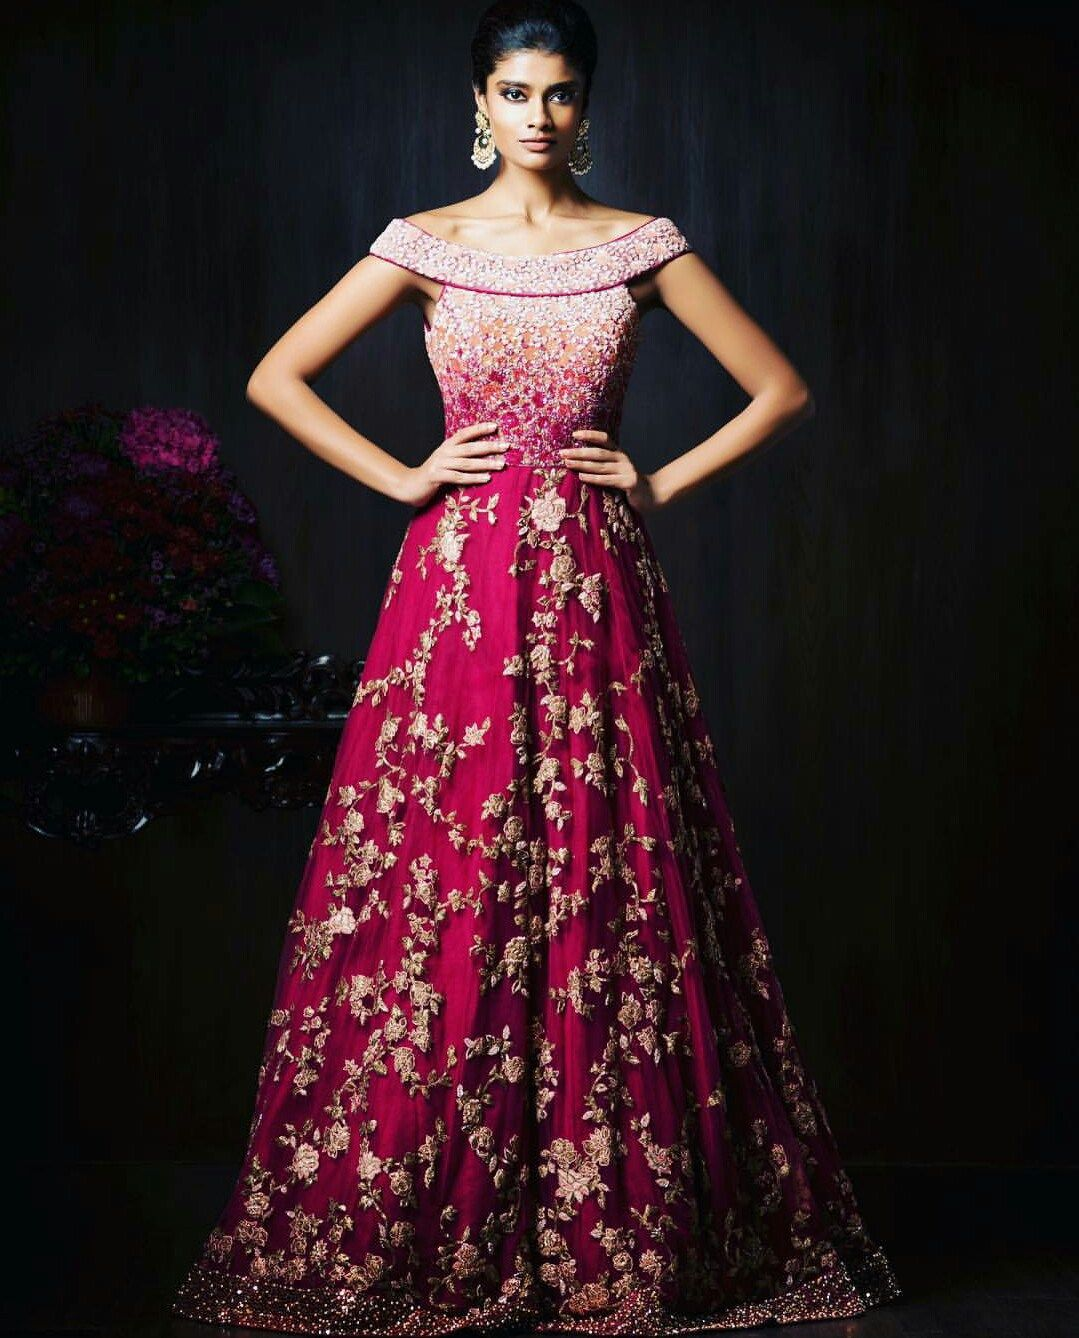 Wedding dresses in london shops  Gorgeous New Indian Reception Gown Styles For Indian Brides  Indian